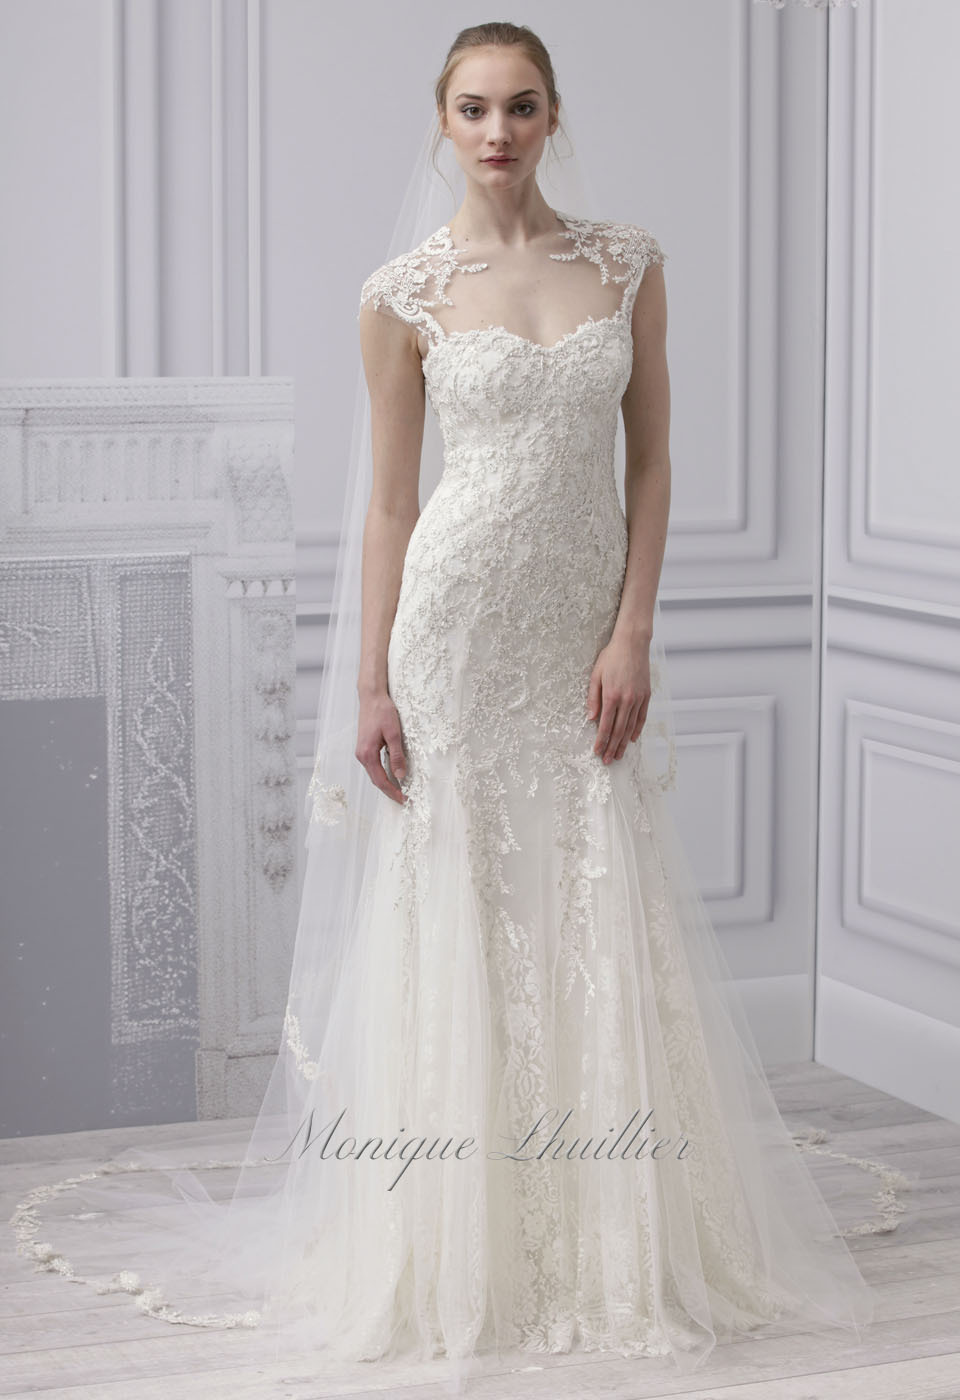 Bride-chic-5-trends-for-fall-2014-modern-lace-monique-lhuillier.full